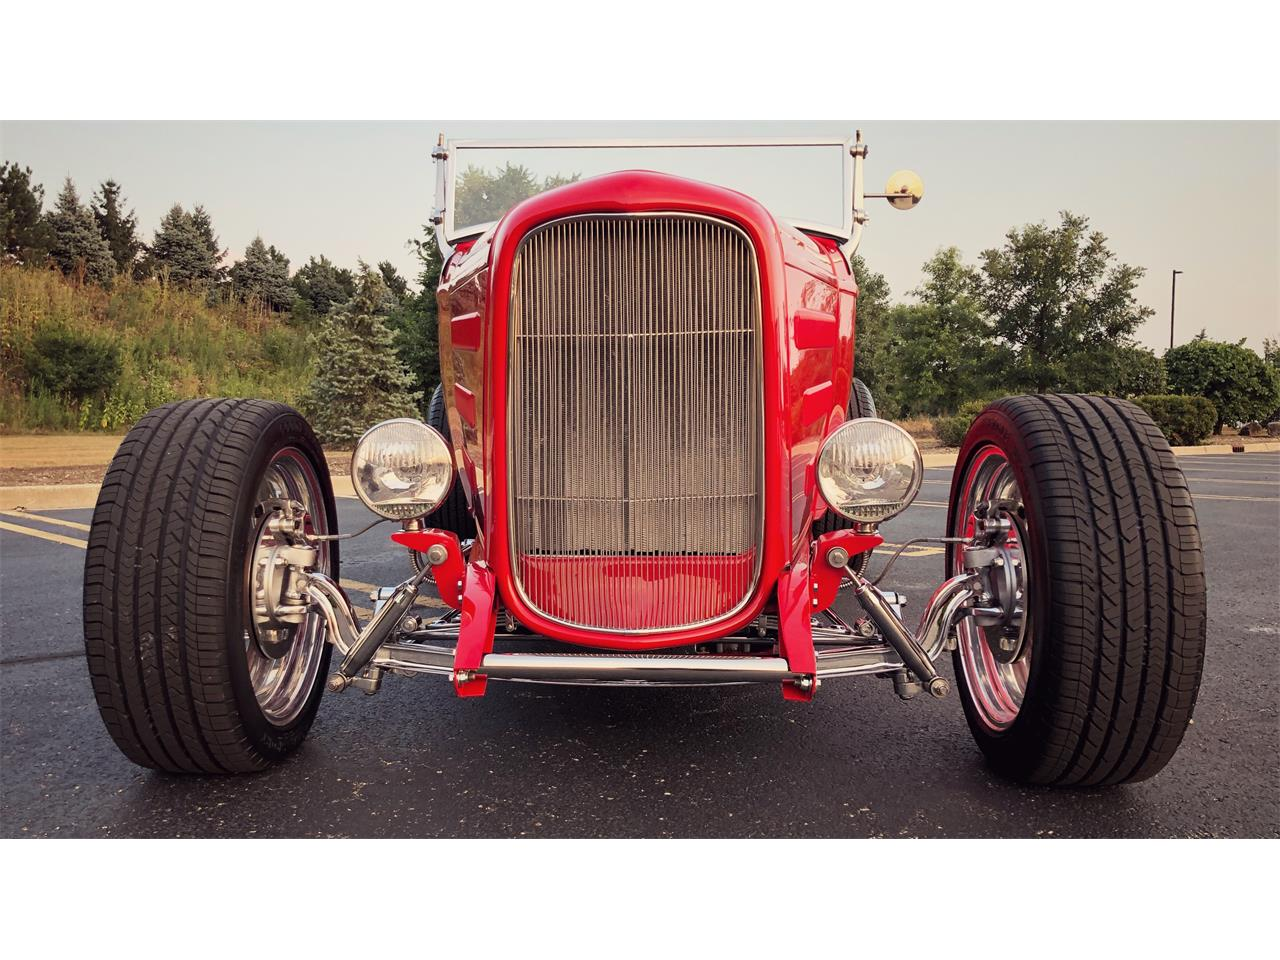 Large Picture of Classic 1932 Ford Roadster - $42,900.00 Offered by a Private Seller - OUMC